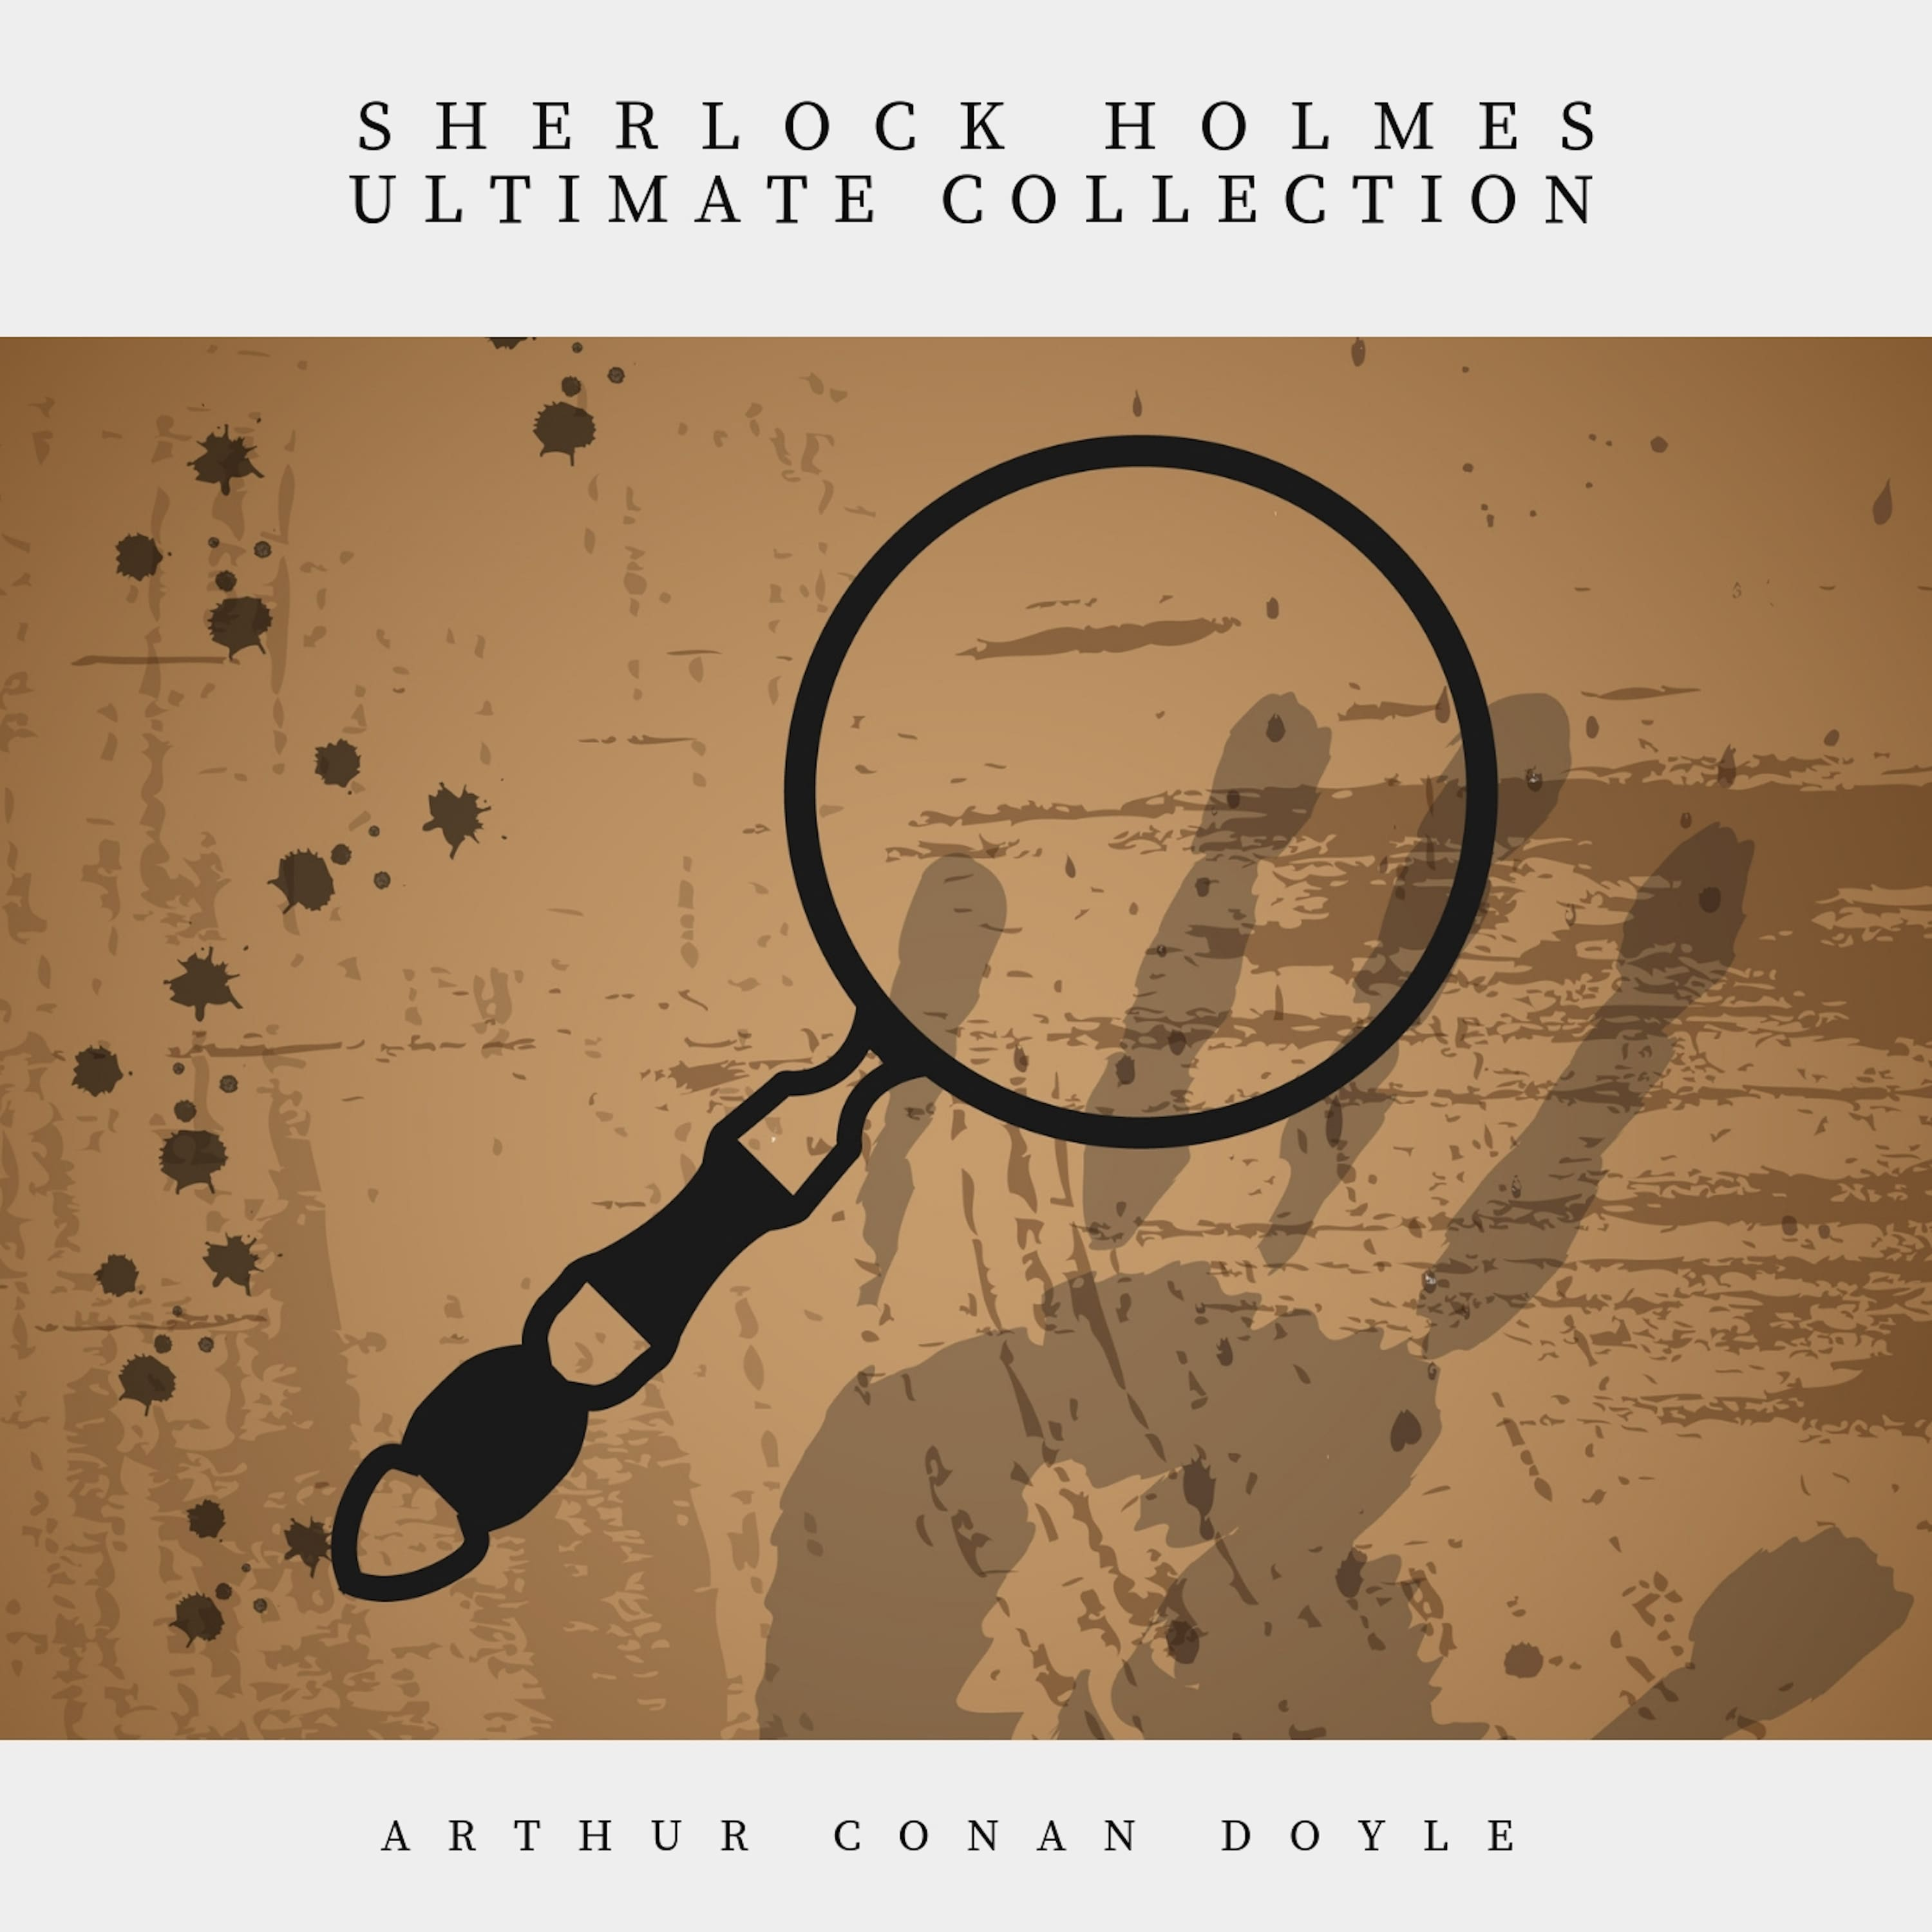 Sherlock Holmes: The Ultimate Collection (Unabridged Audiobook) $0.86 Audible